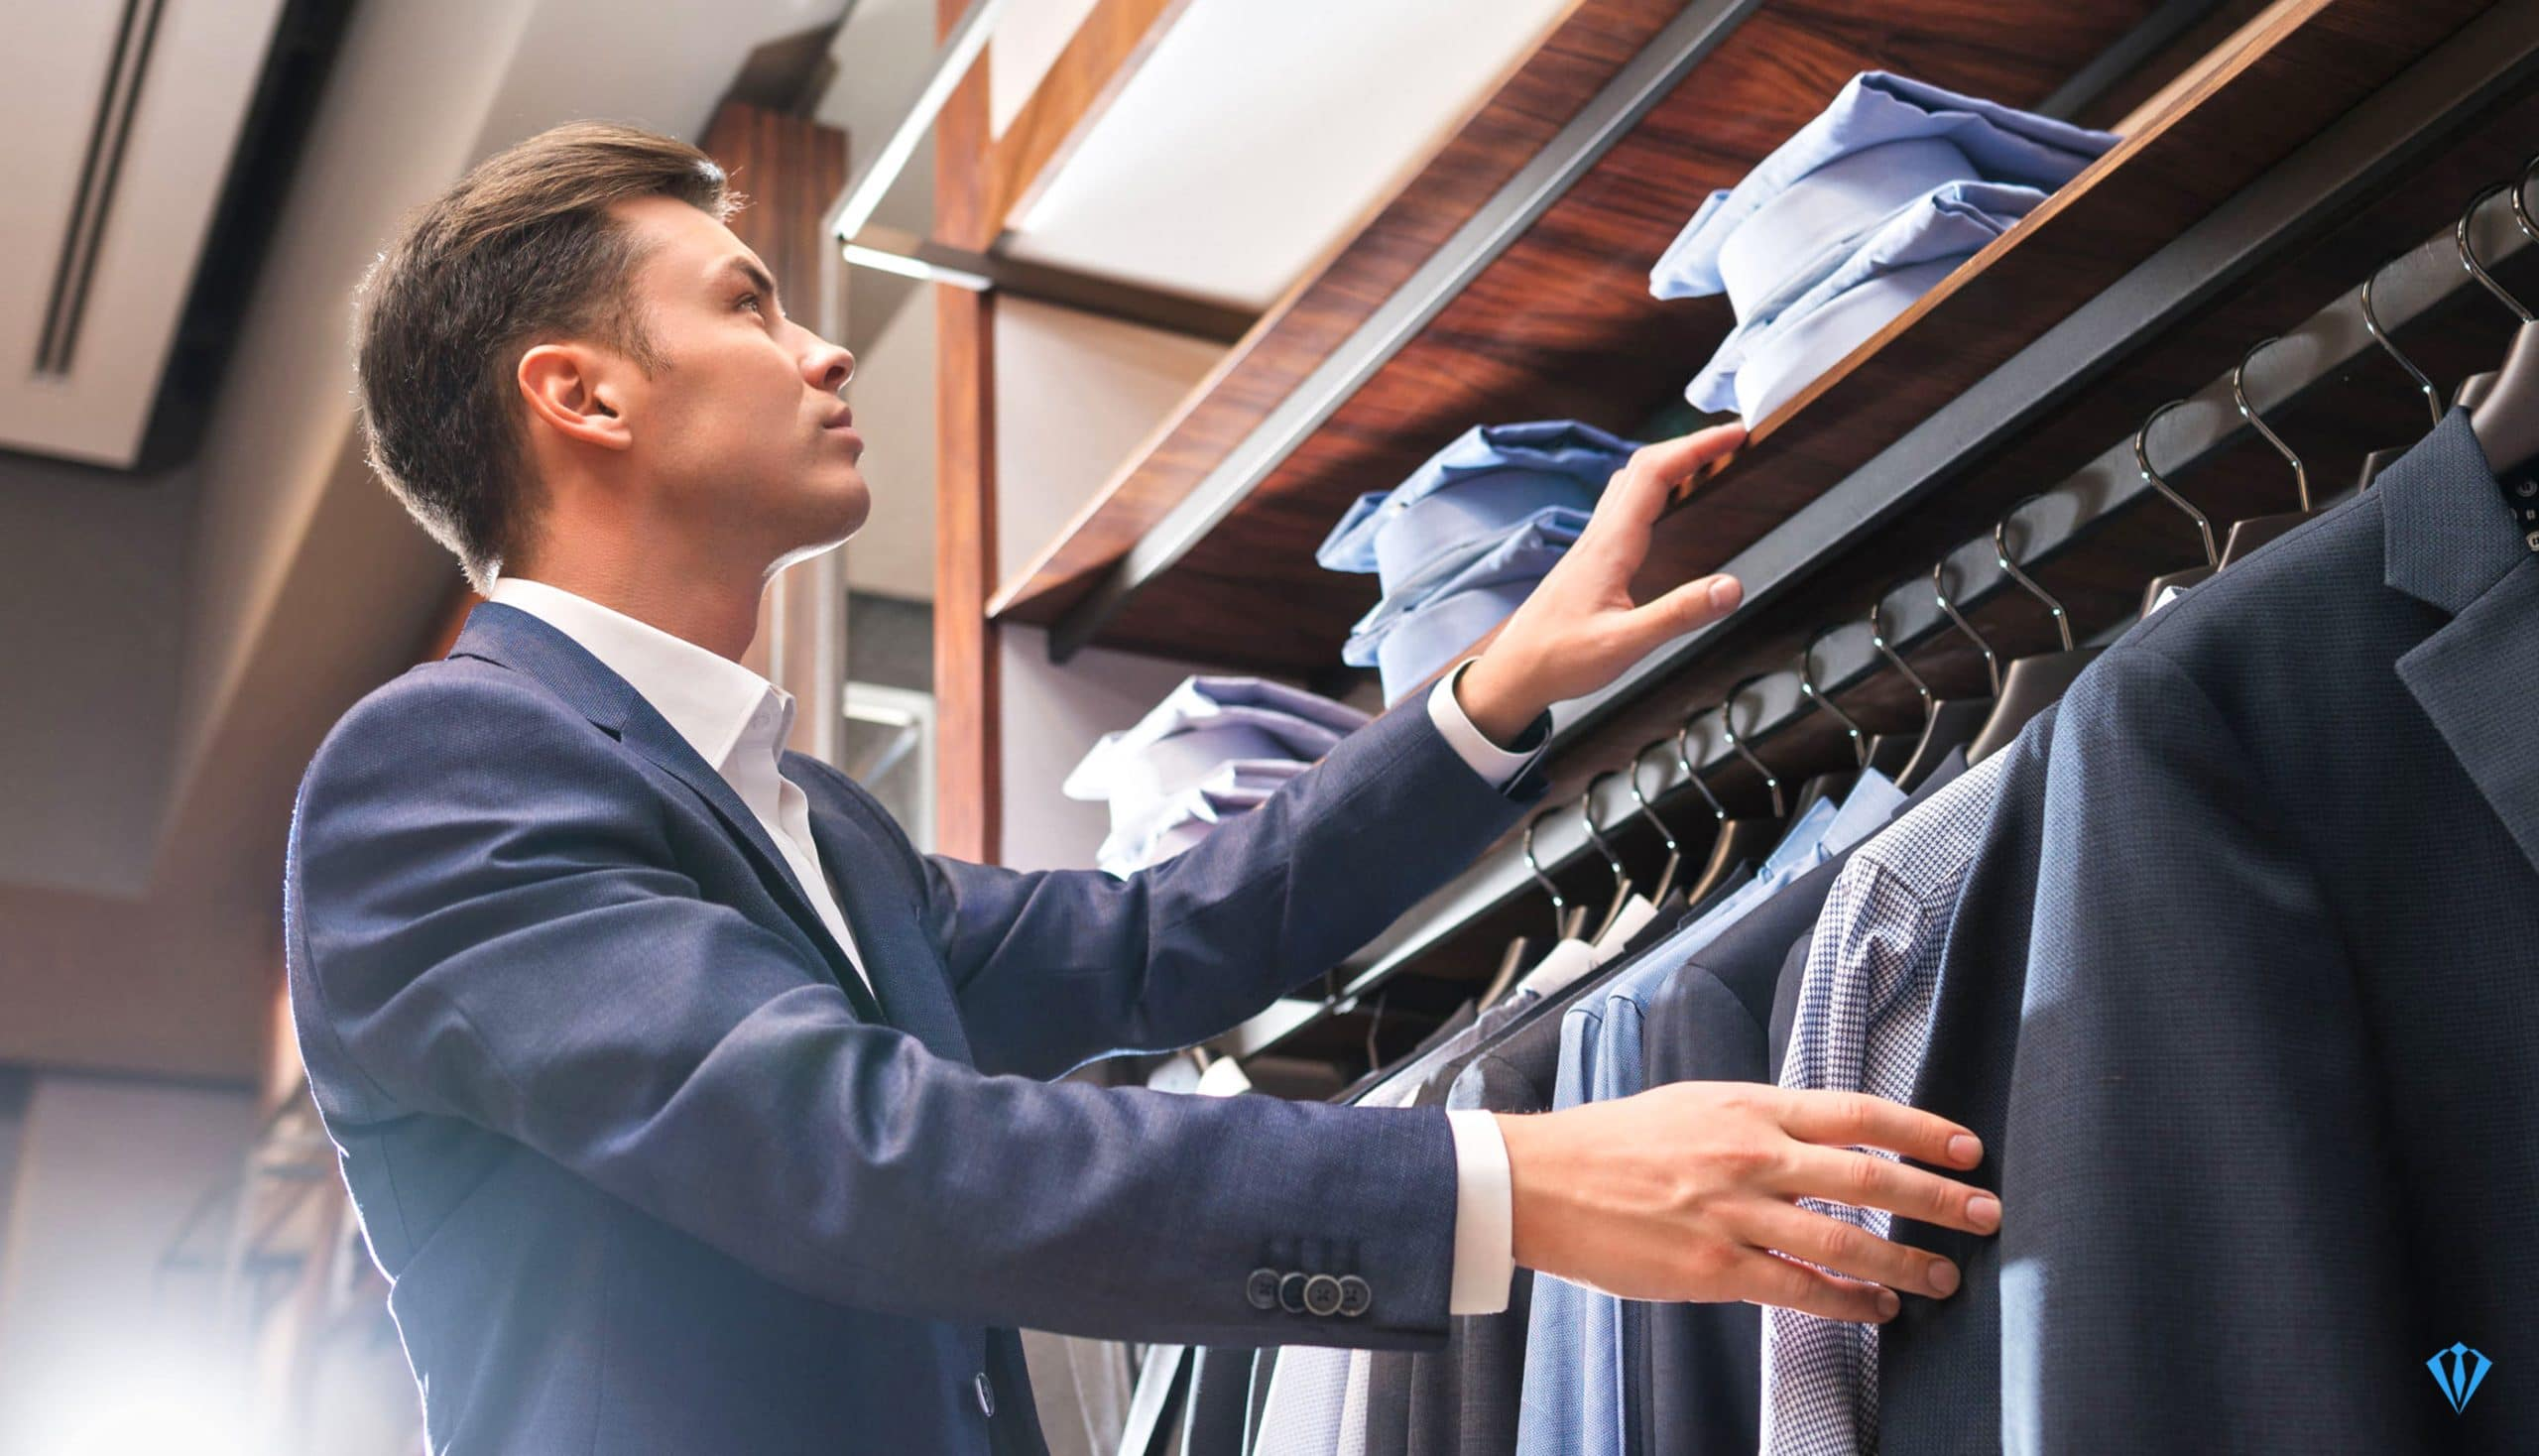 how to find the right suit size